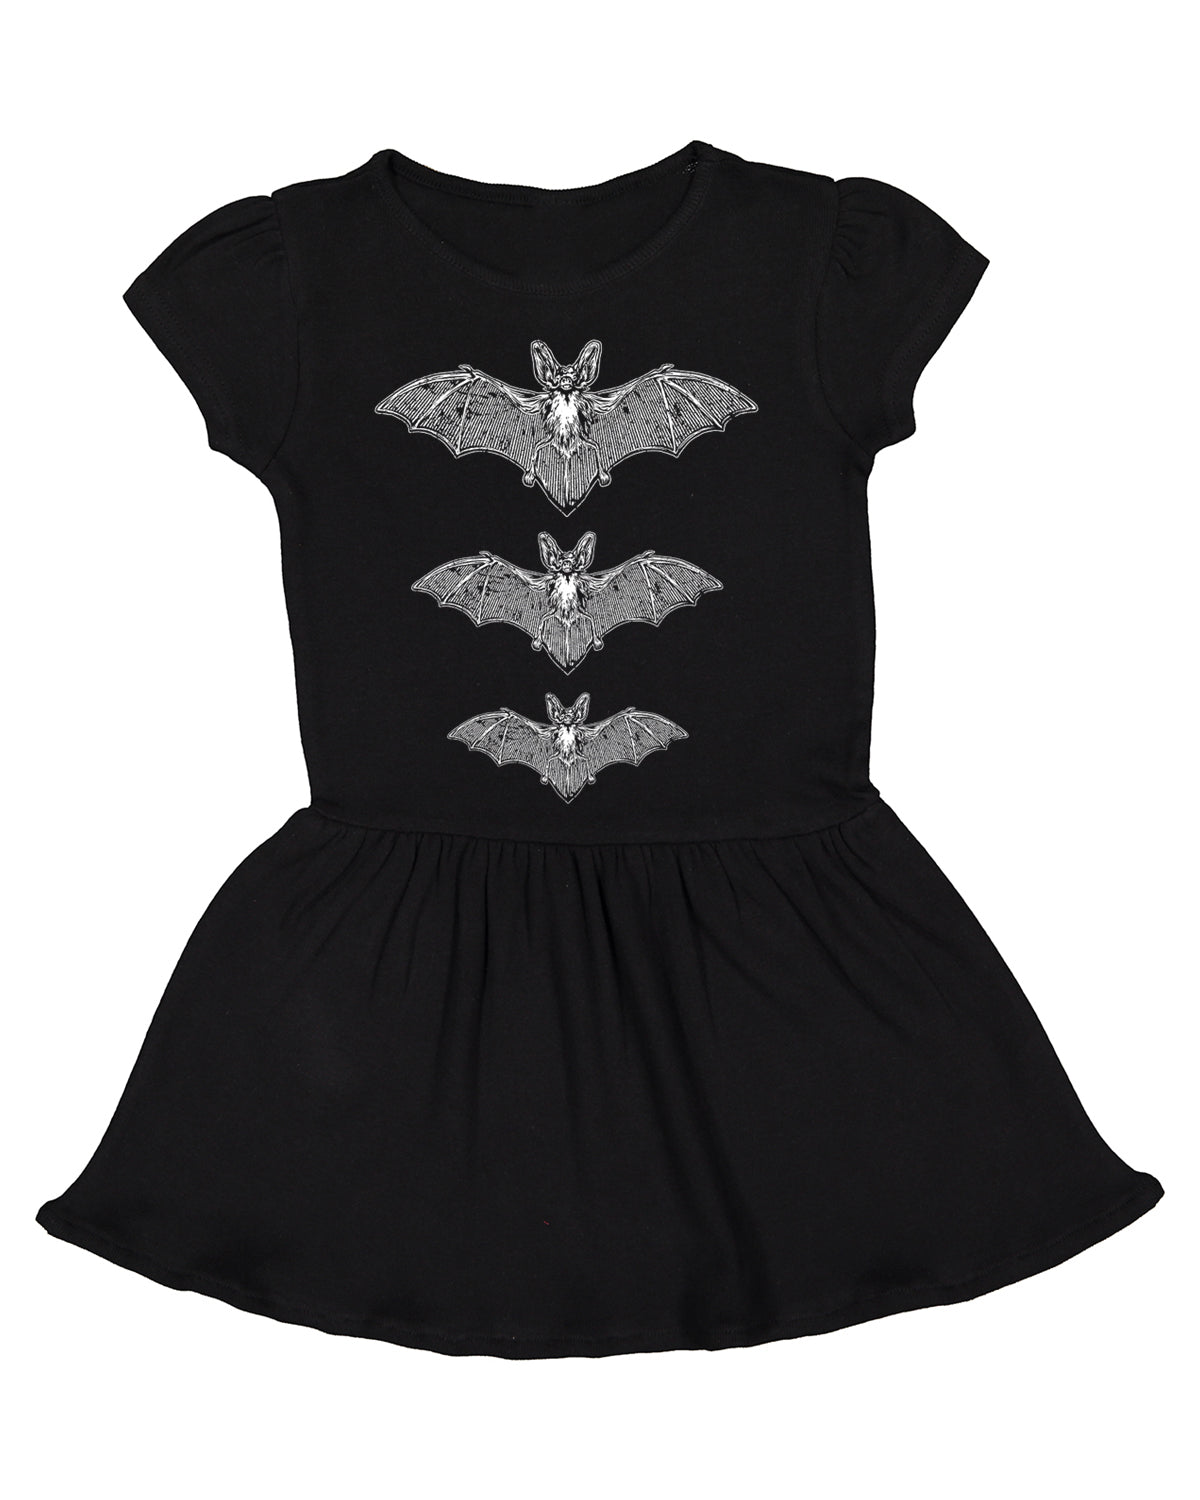 Release The Bats - Baby / Toddler Dress